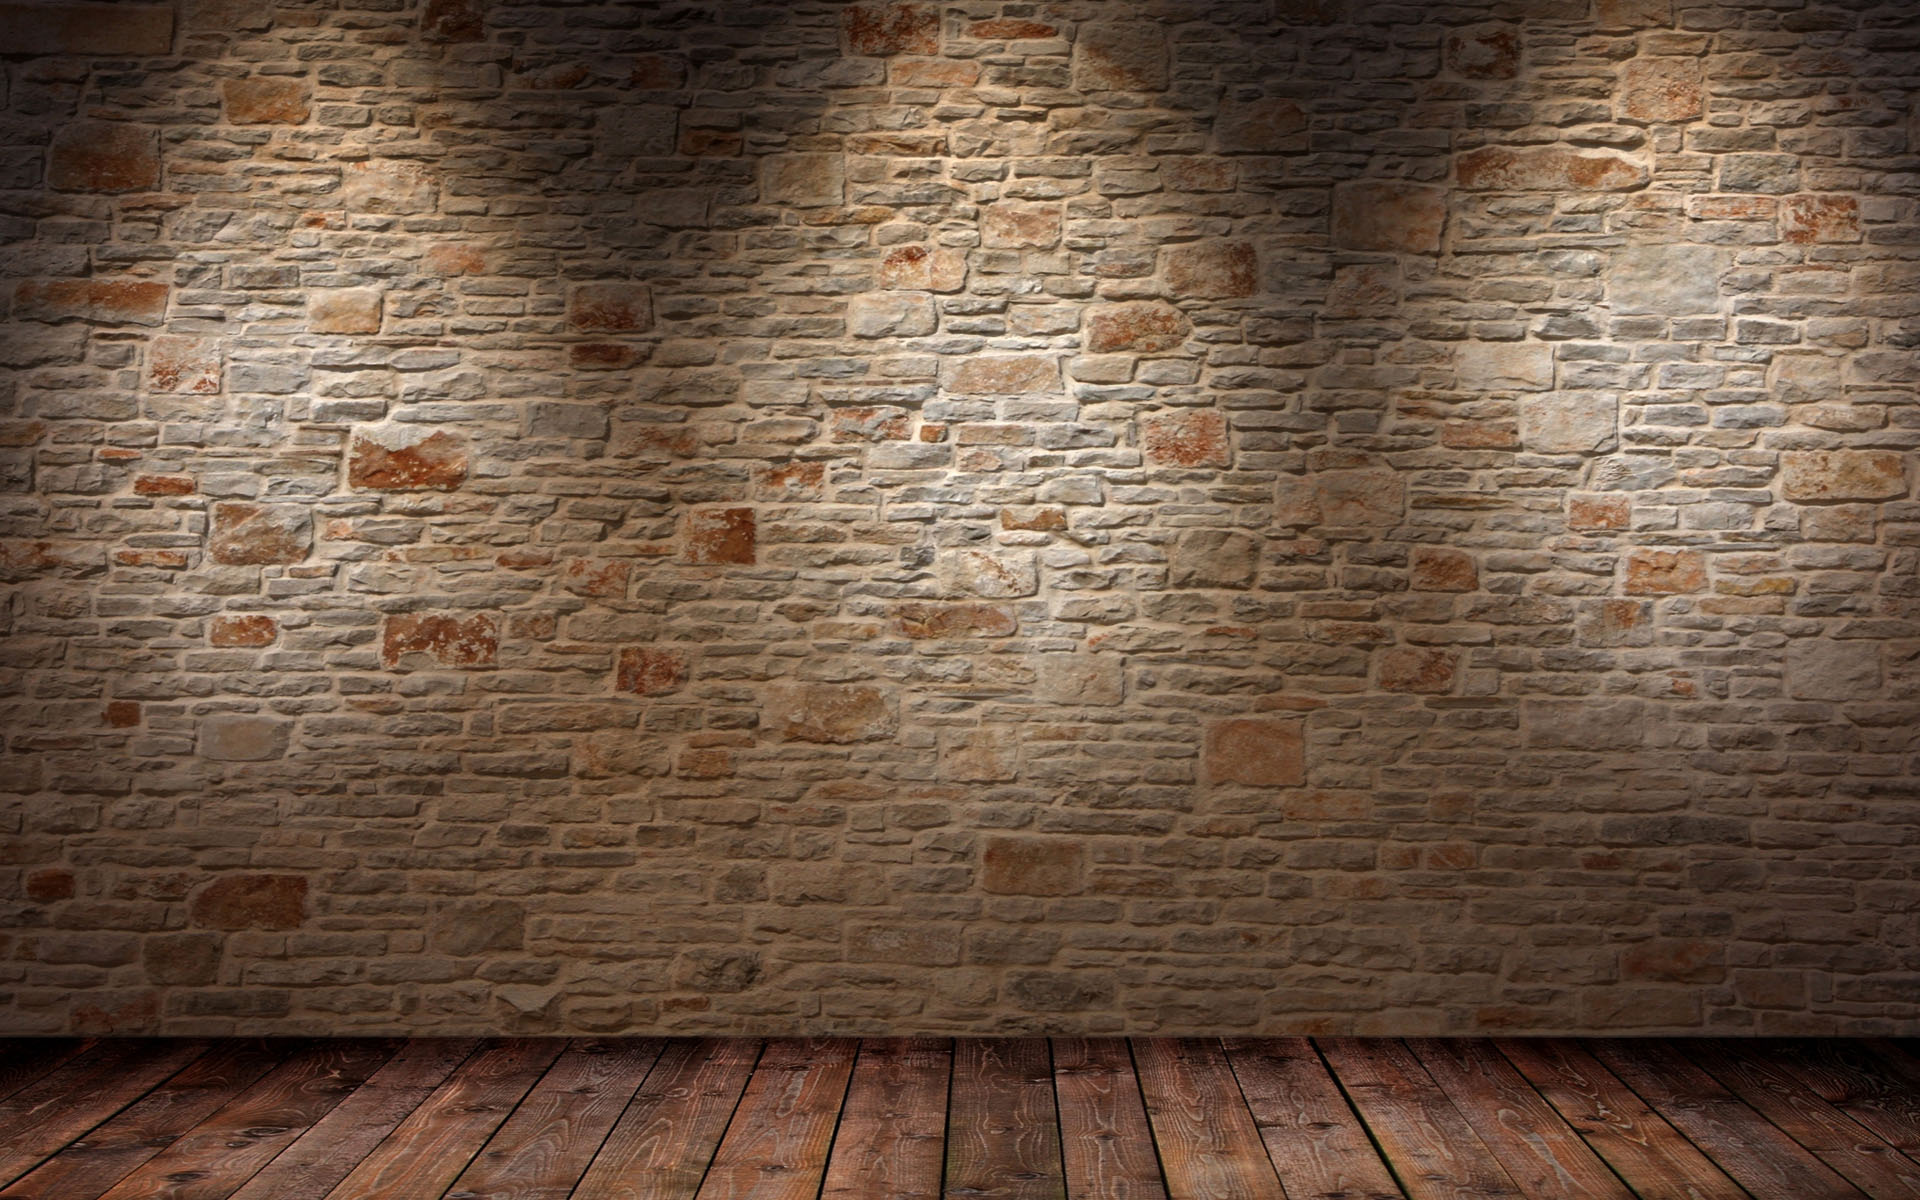 Bricks Interior Hd Wallpaper Hd Latest Wallpapers